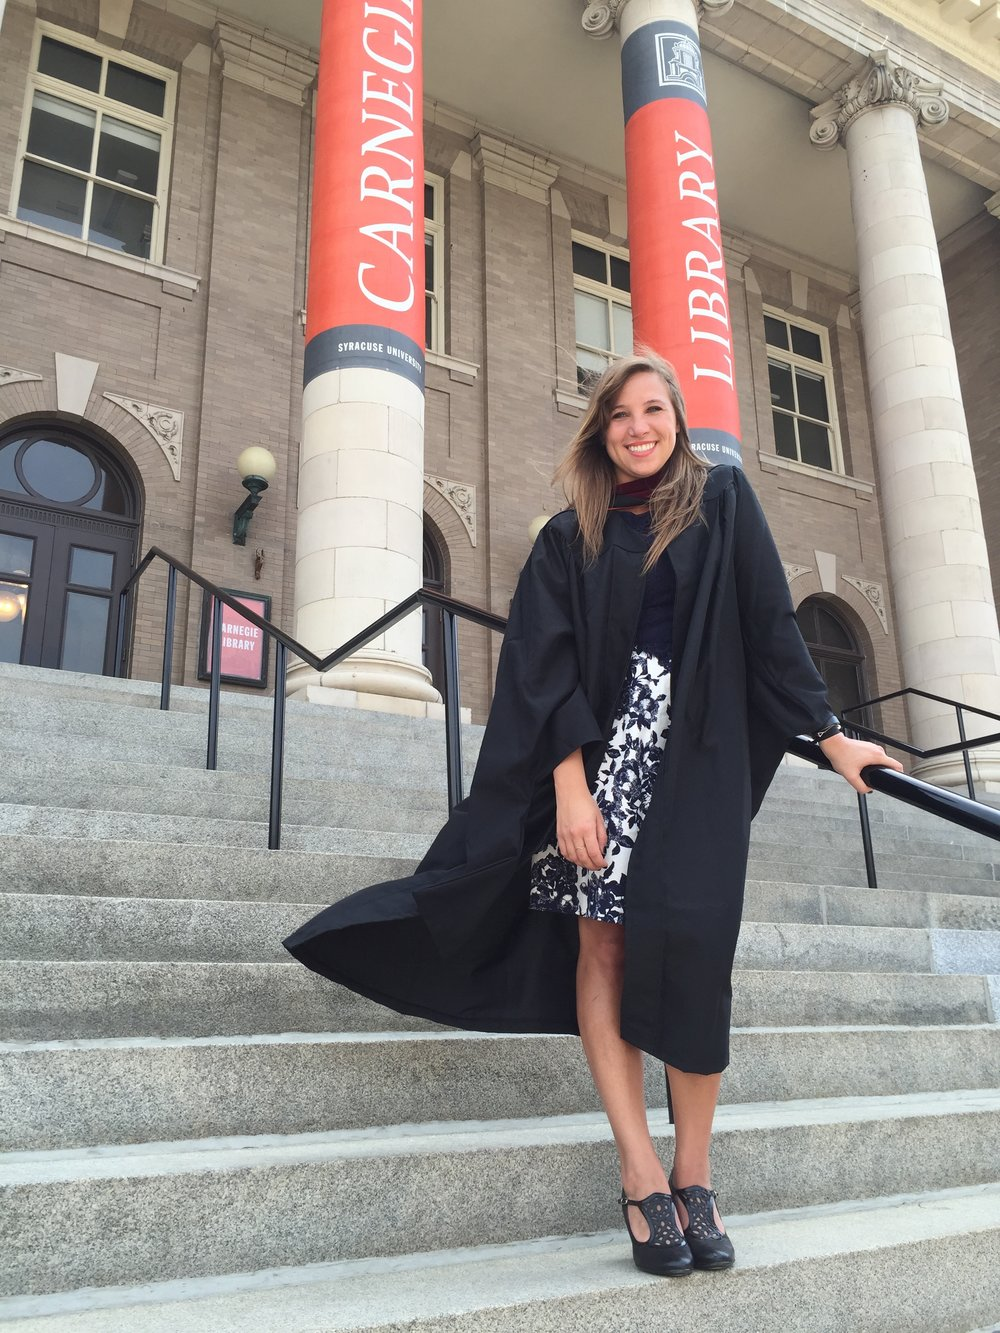 Sydney graduating from Syracuse University's Newhouse School of Communications, with a Masters in Arts Journalism, Architecture - May 2015